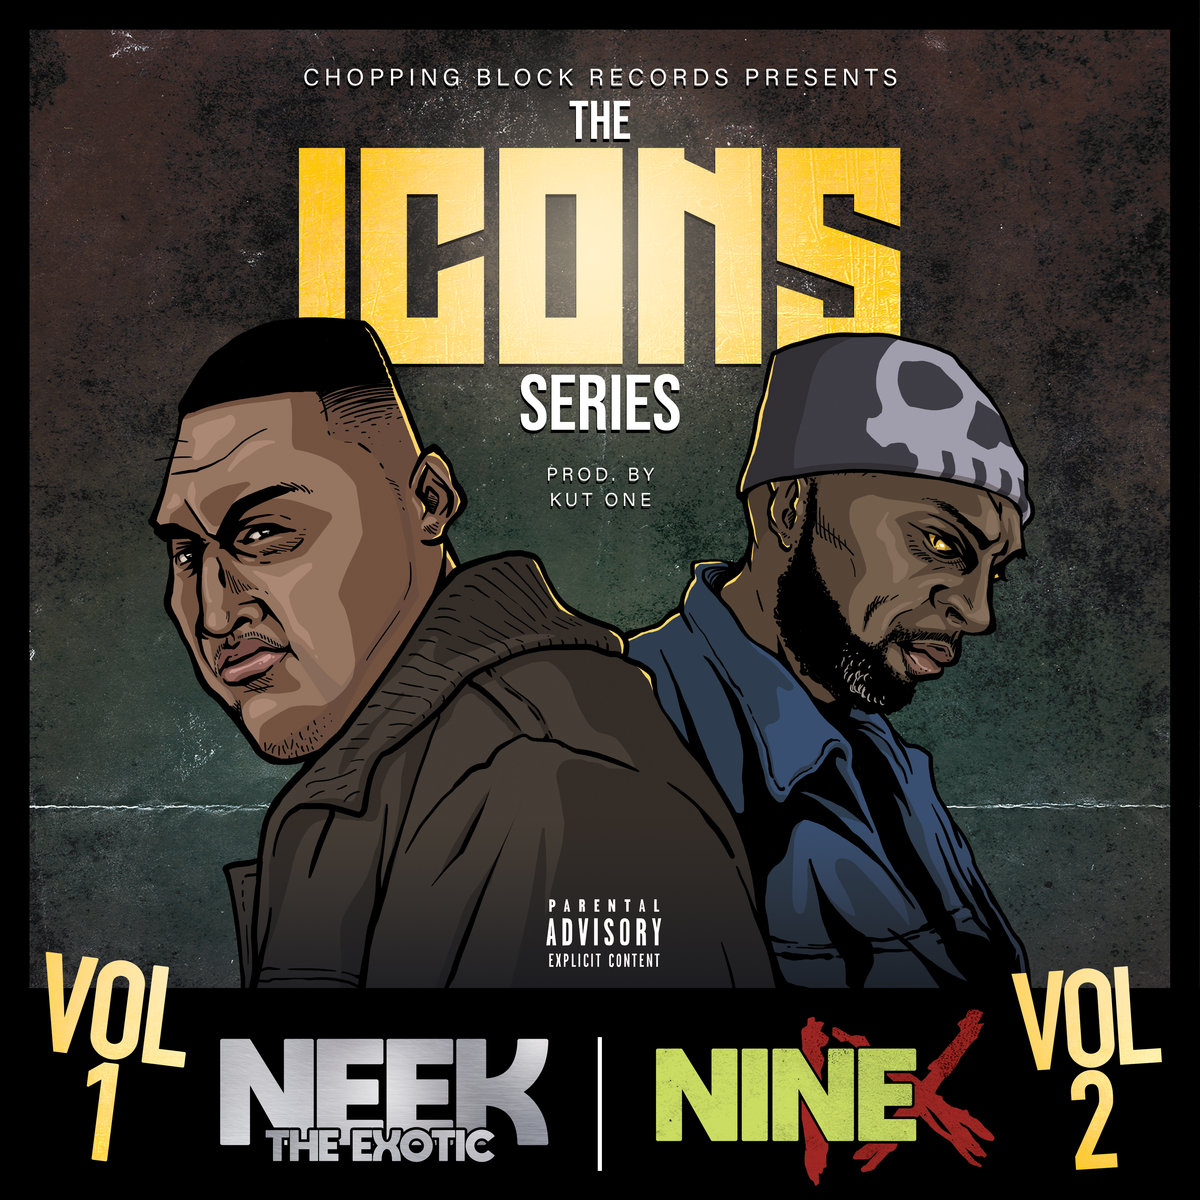 Kut_one_x_neek_the_exotic_the_icons_series_vol_1